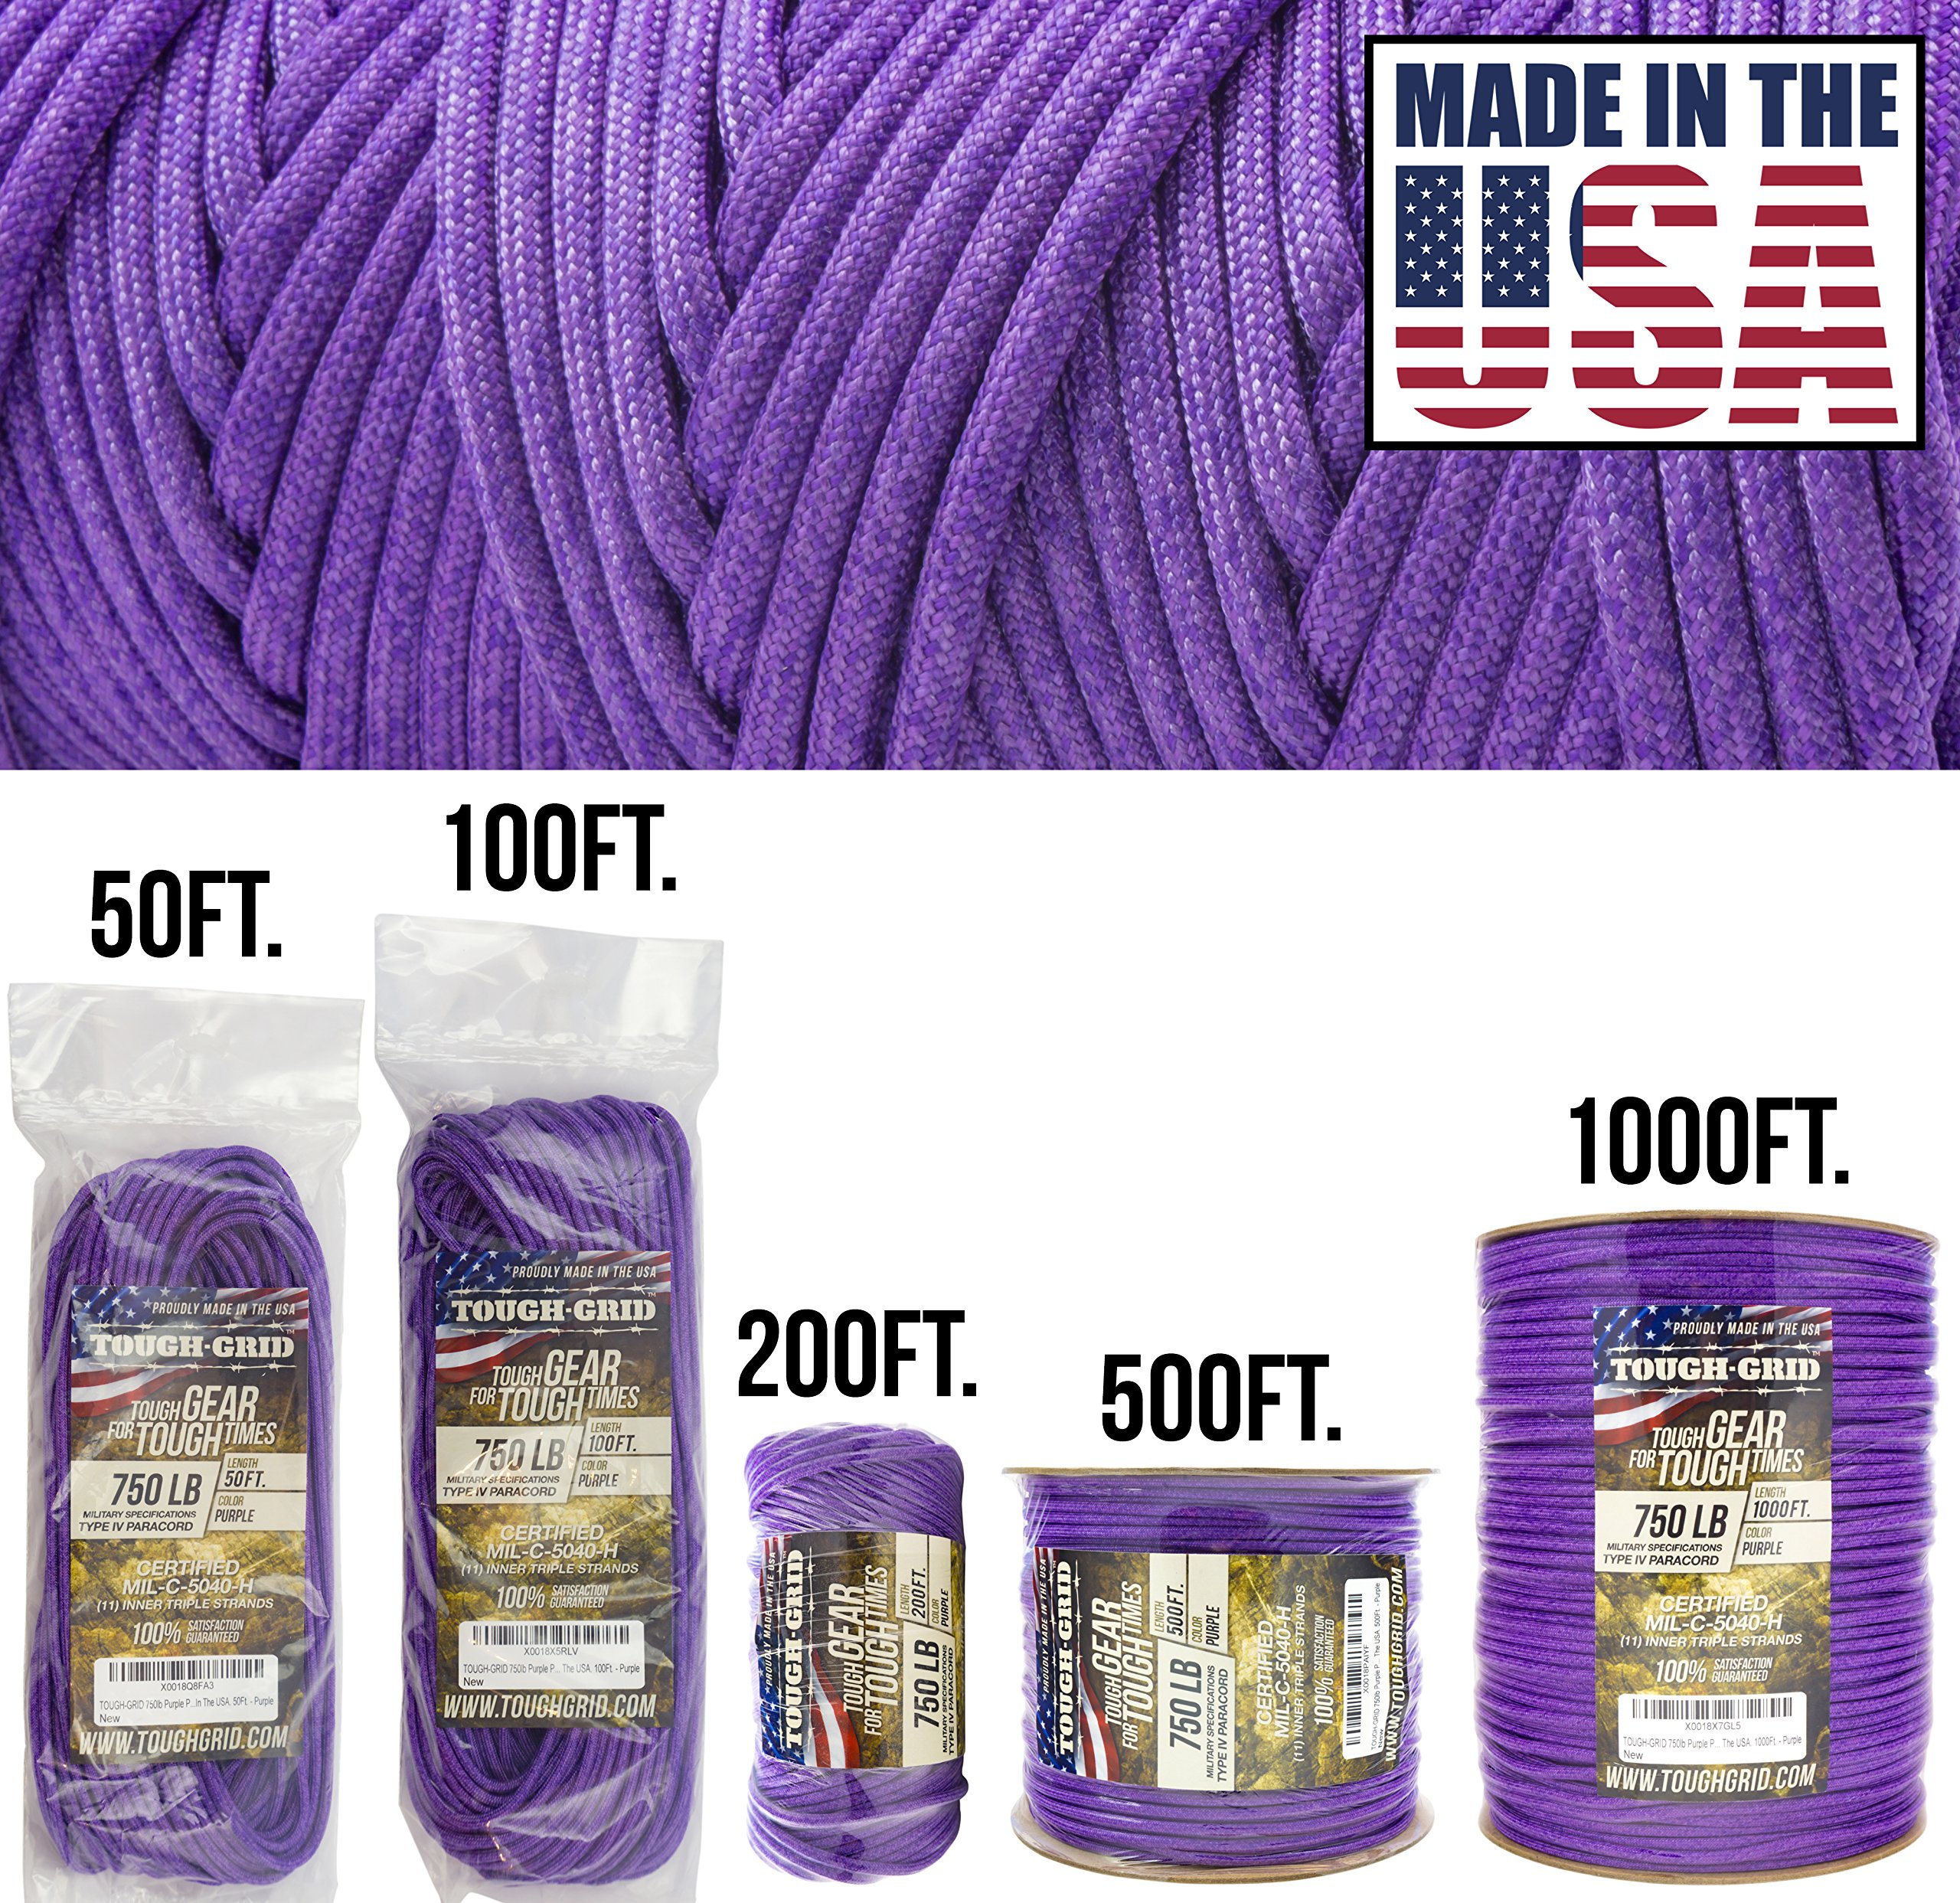 TOUGH-GRID 750lb Purple Paracord/Parachute Cord - Genuine Mil Spec Type IV 750lb Paracord Used by The US Military (MIl-C-5040-H) - 100% Nylon - Made in The USA. 200Ft. - Purple by TOUGH-GRID